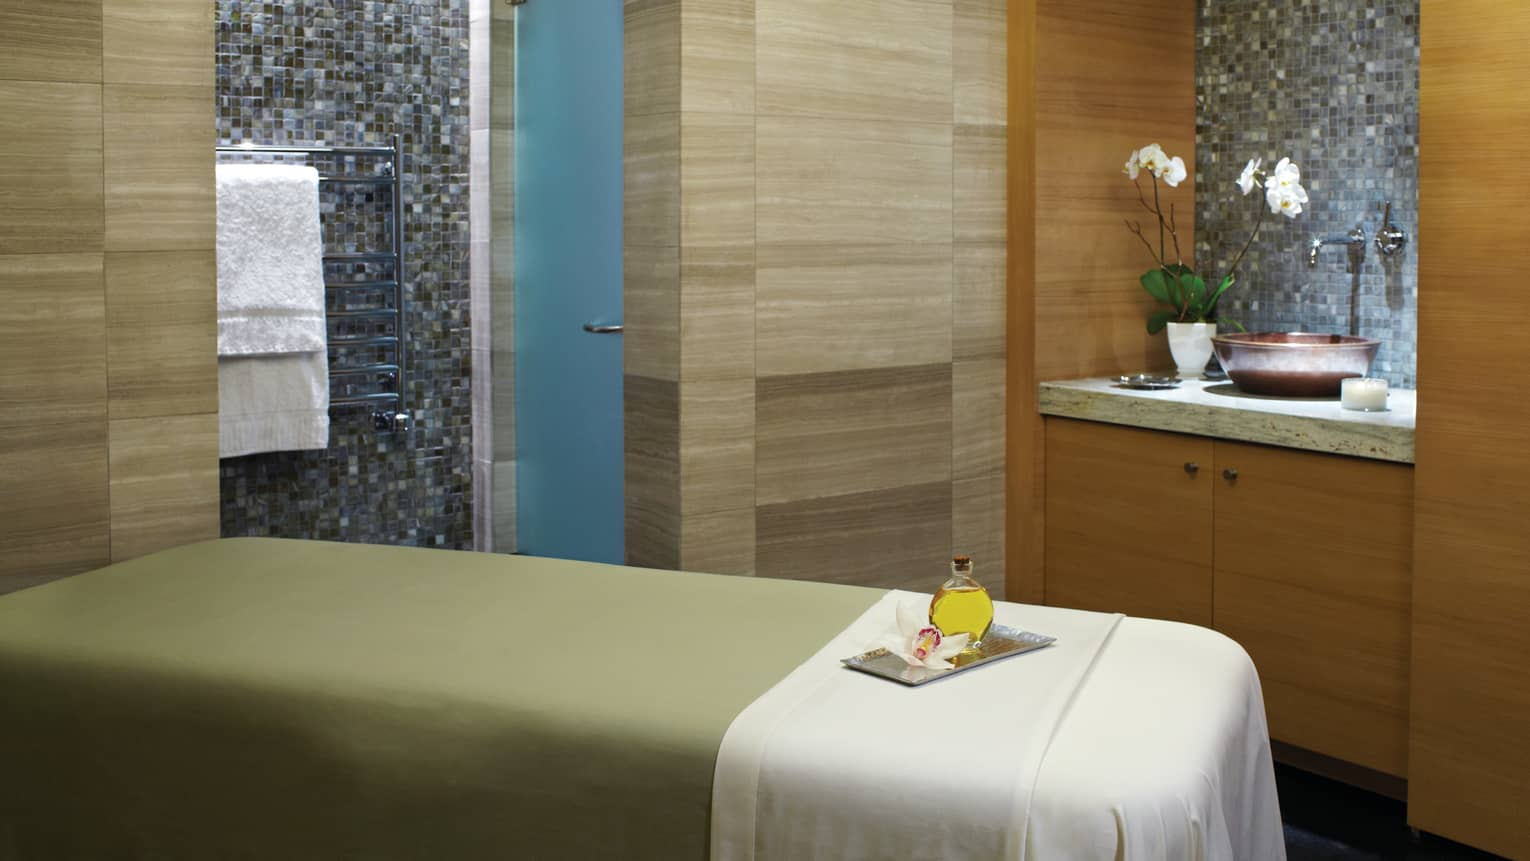 Massage table with green blanket, white sheet, wood and tile walls, sink